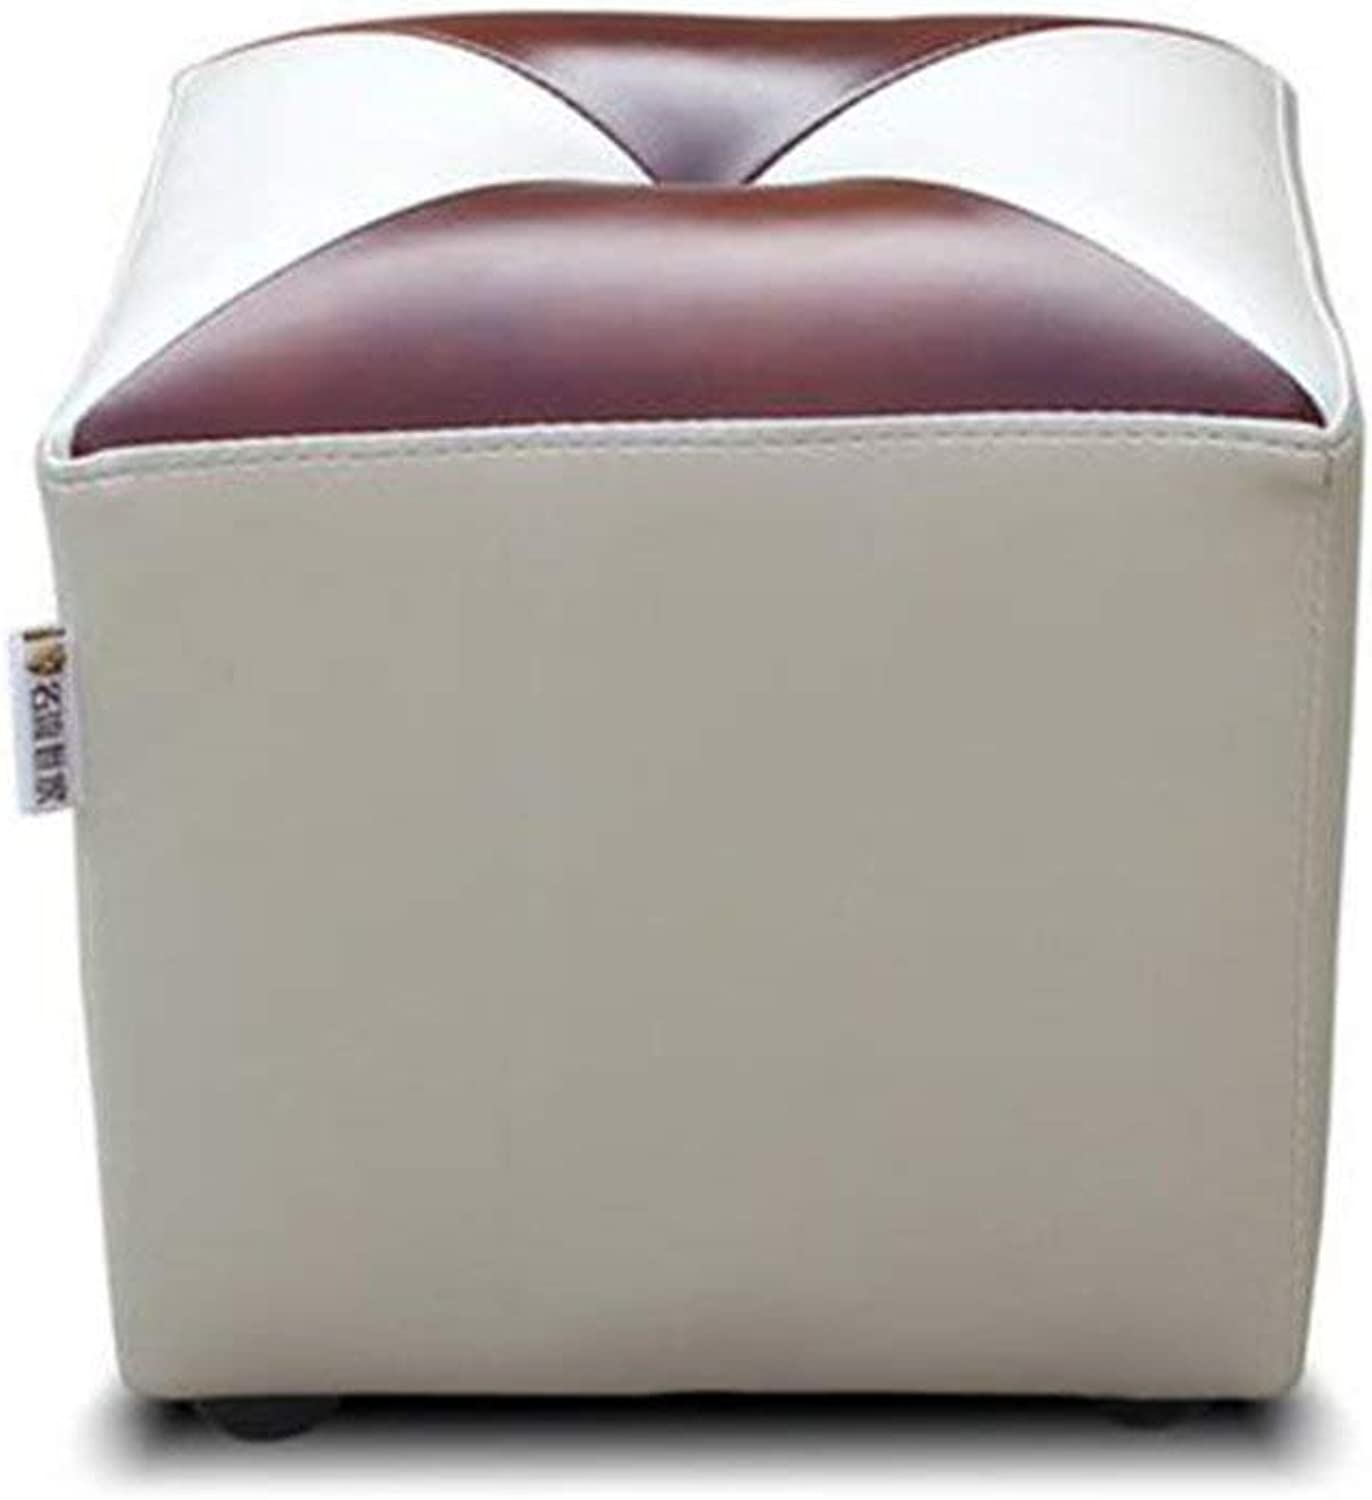 QTQZ Brisk- Imitation for shoes Stool European Style Living Room Round Sofa Stool Fashionable Dressing Stool Footstool (color Style Optional) (color  B)